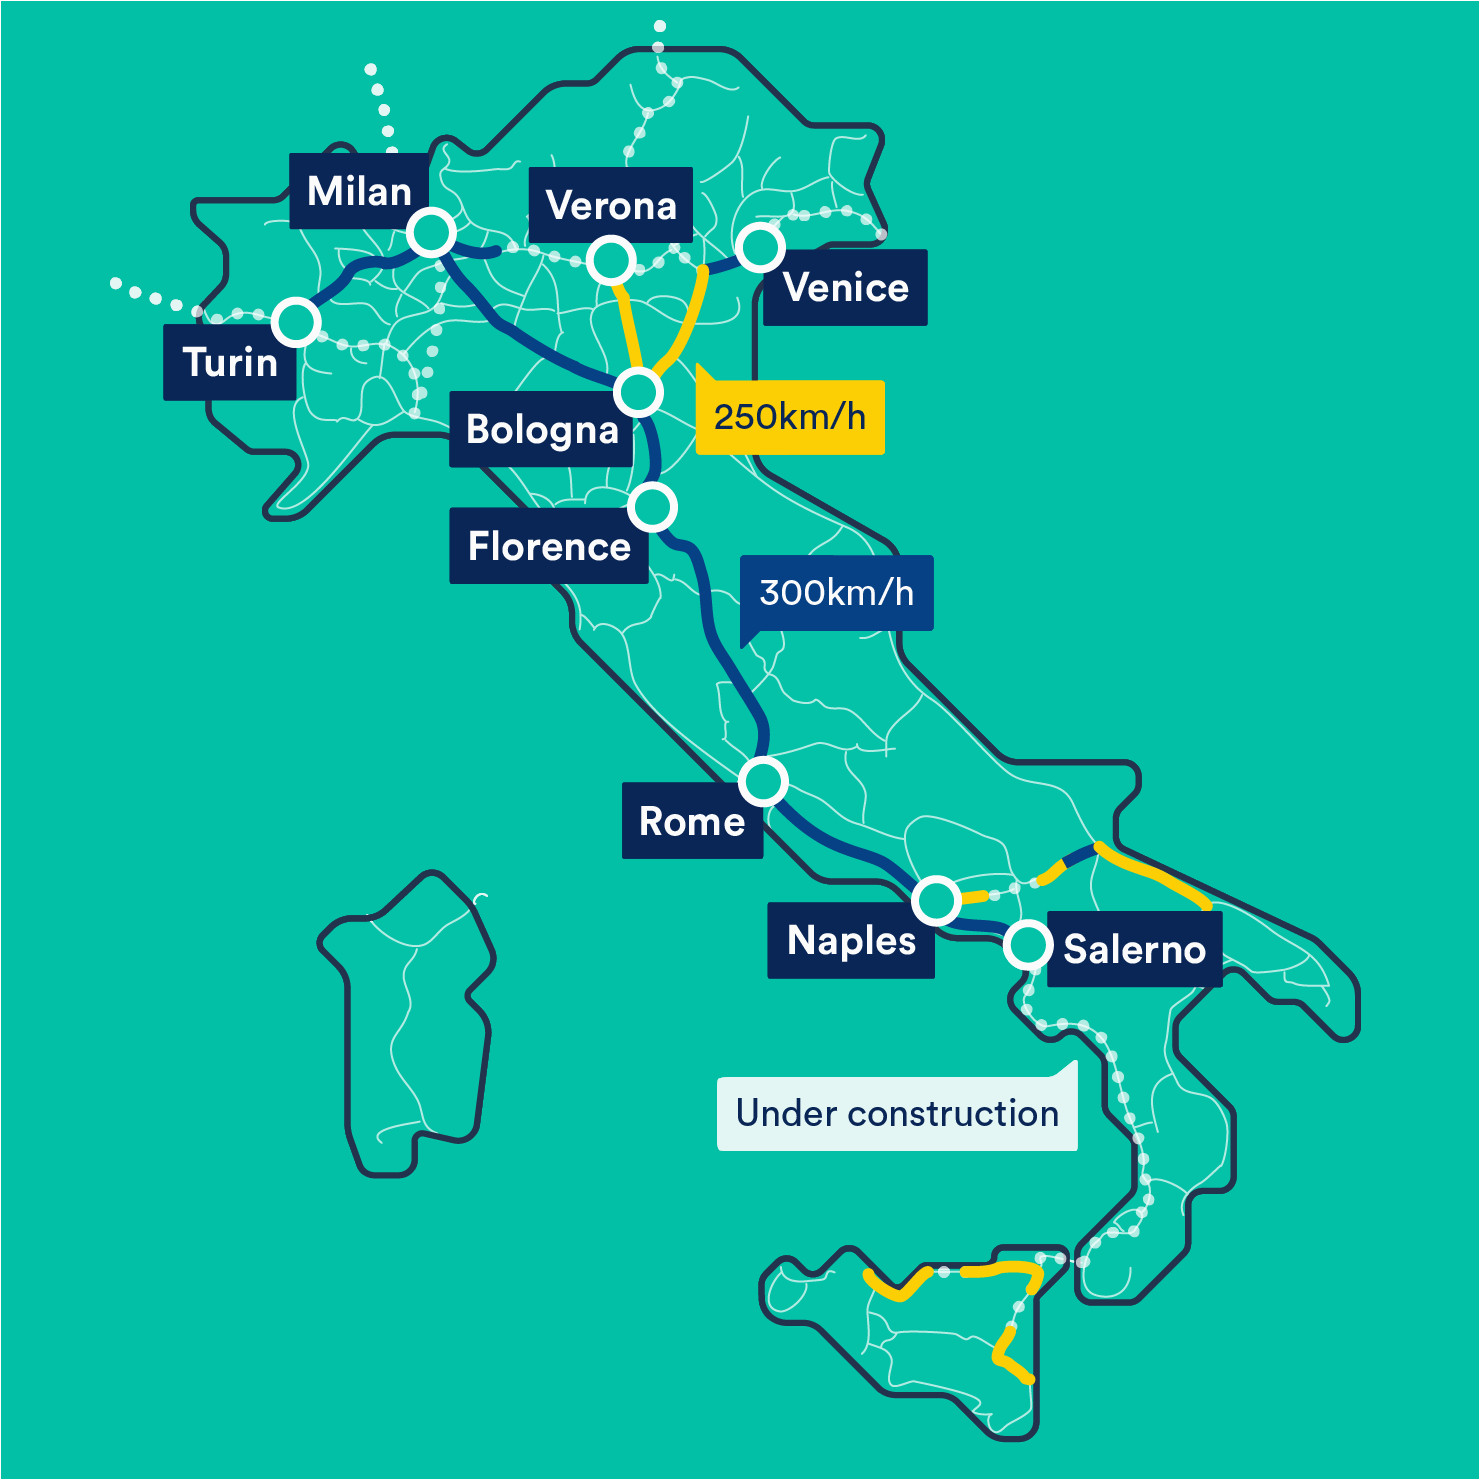 Trains Italy Map Trenitalia Map with Train Descriptions and Links to Purchasing